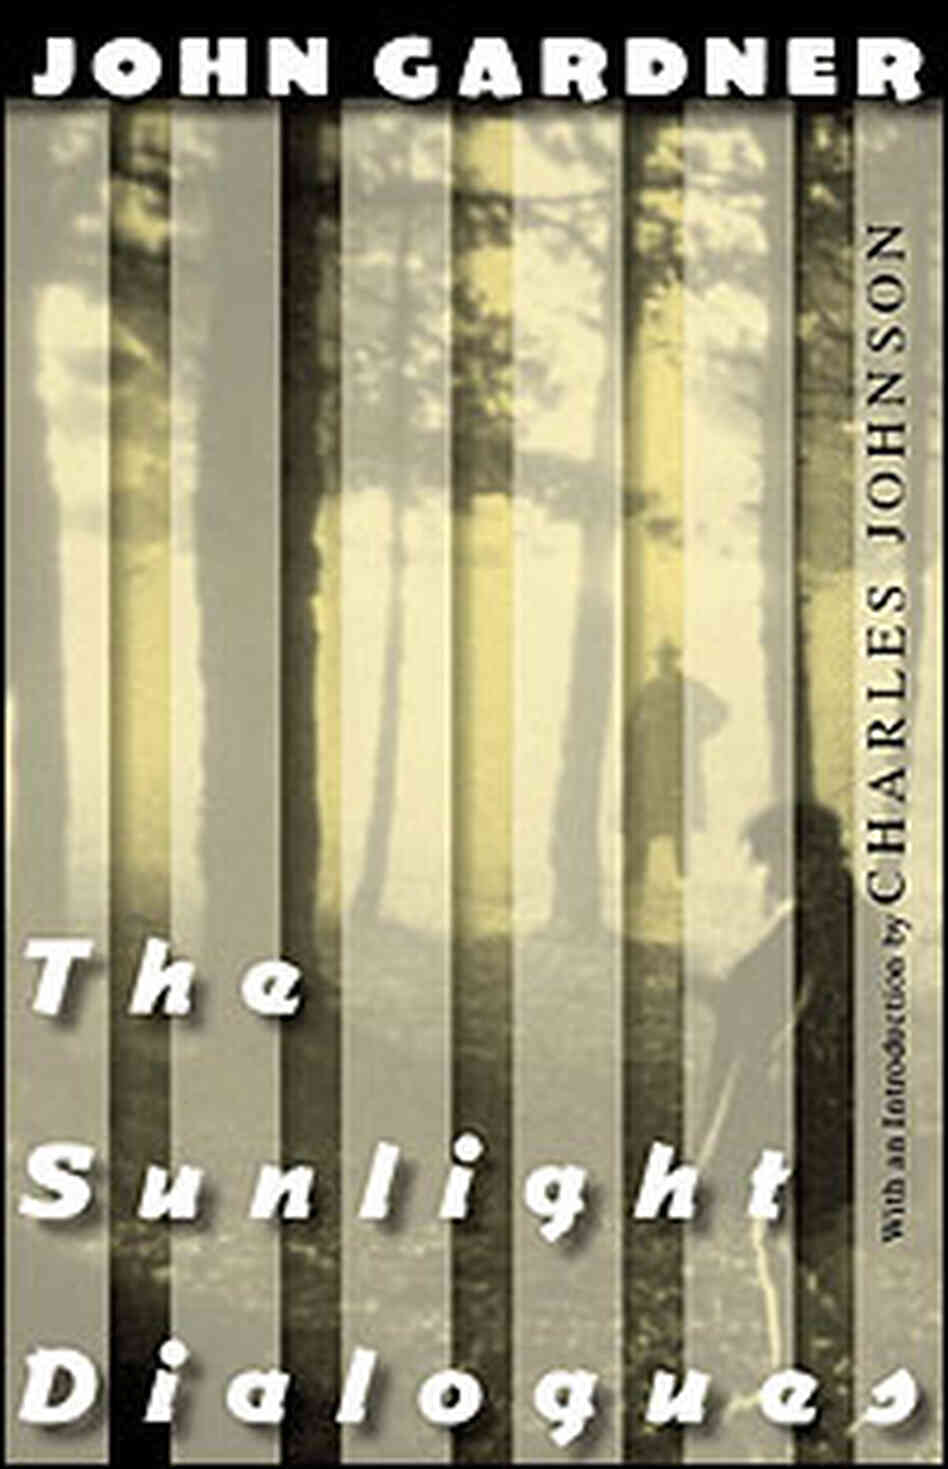 Sunlight Dialogues Book Cover